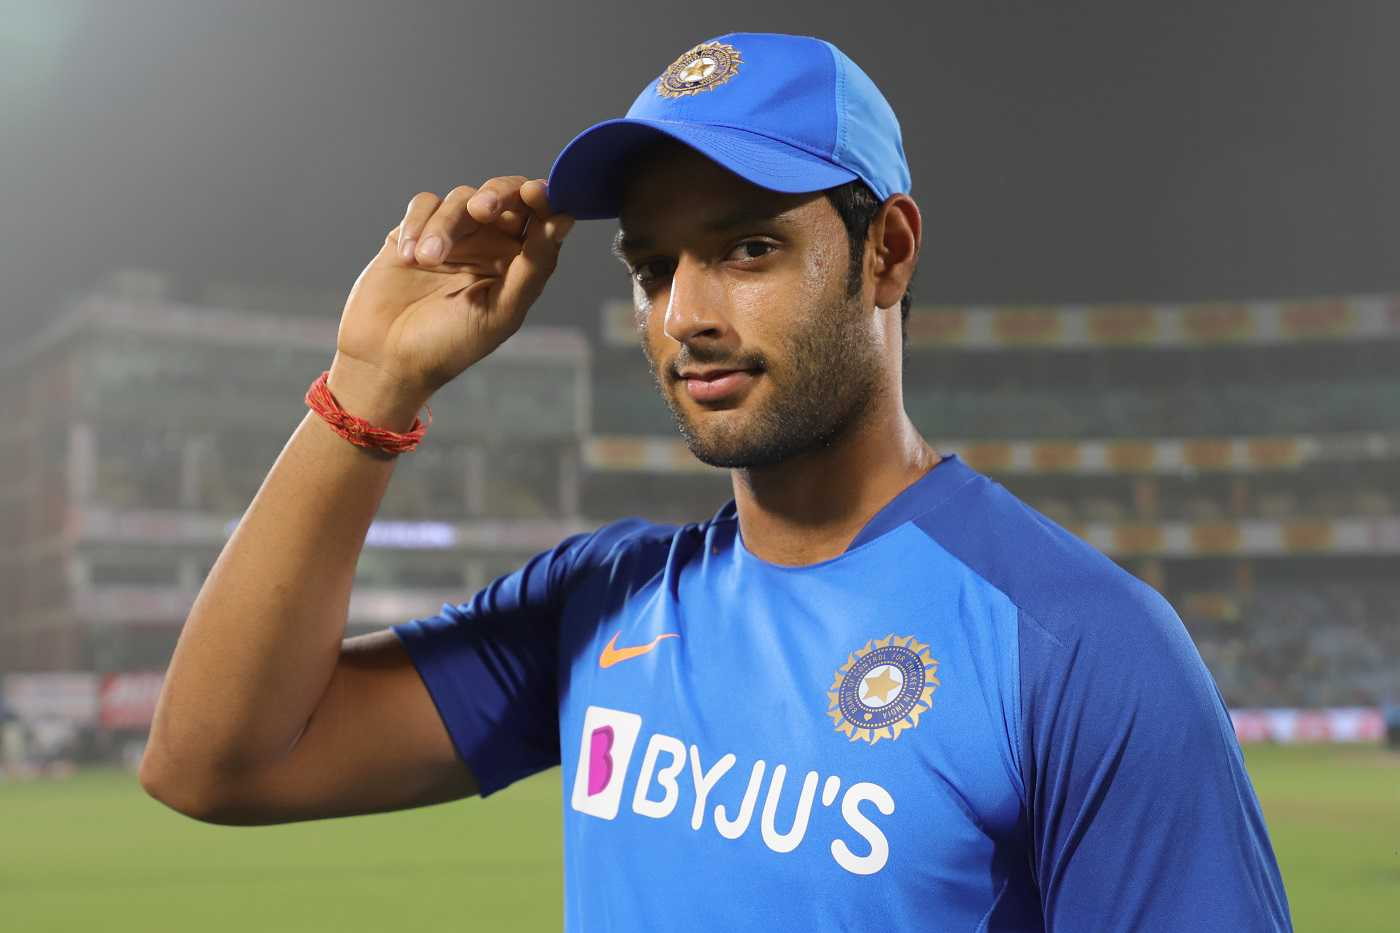 Find out how many billionaire batsman Shivam Dubey gets paid every year by the Indian team